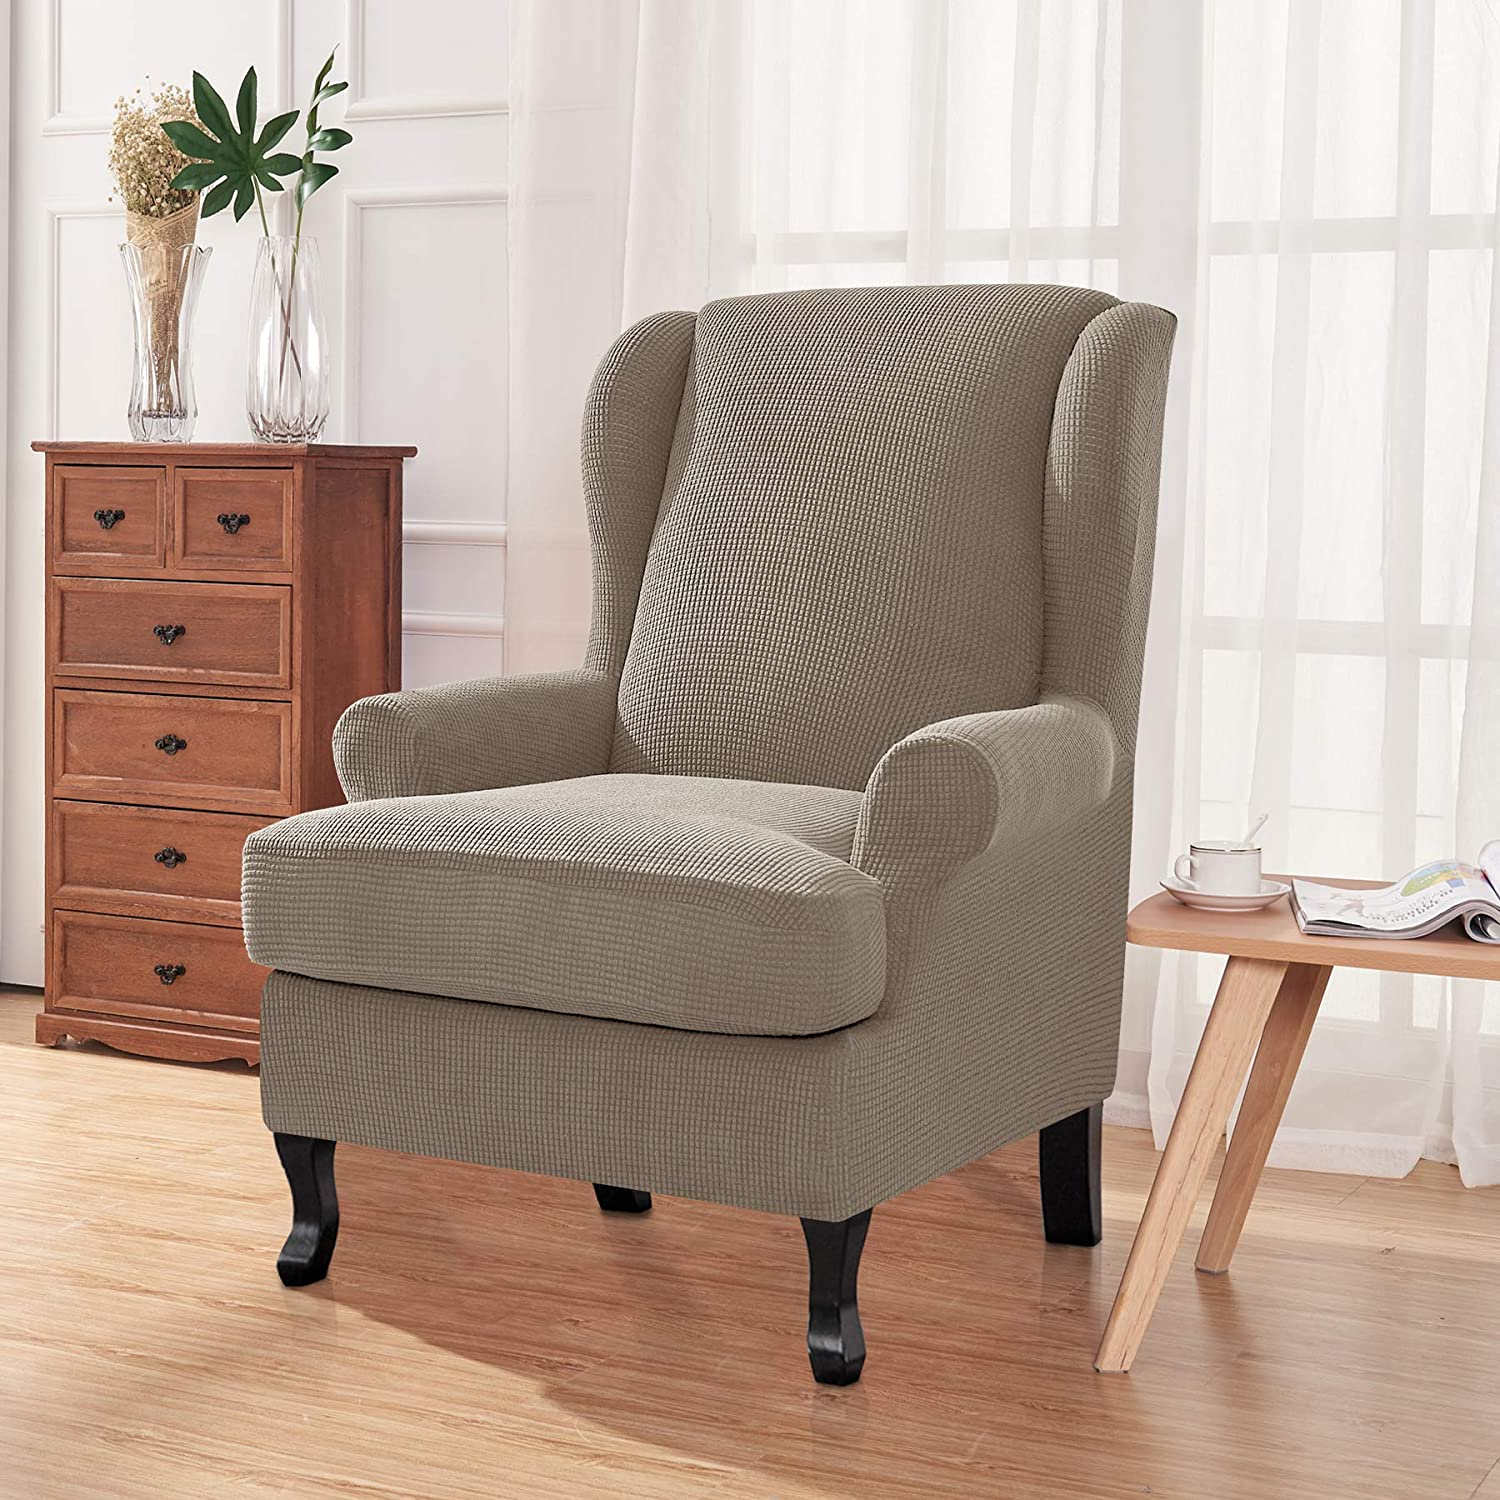 CHUN YI 2-Piece Stretch Jacquard Spandex Fabric Wing Back Wingback Armchair Chair Slipcovers Ivory White, Wing Chair